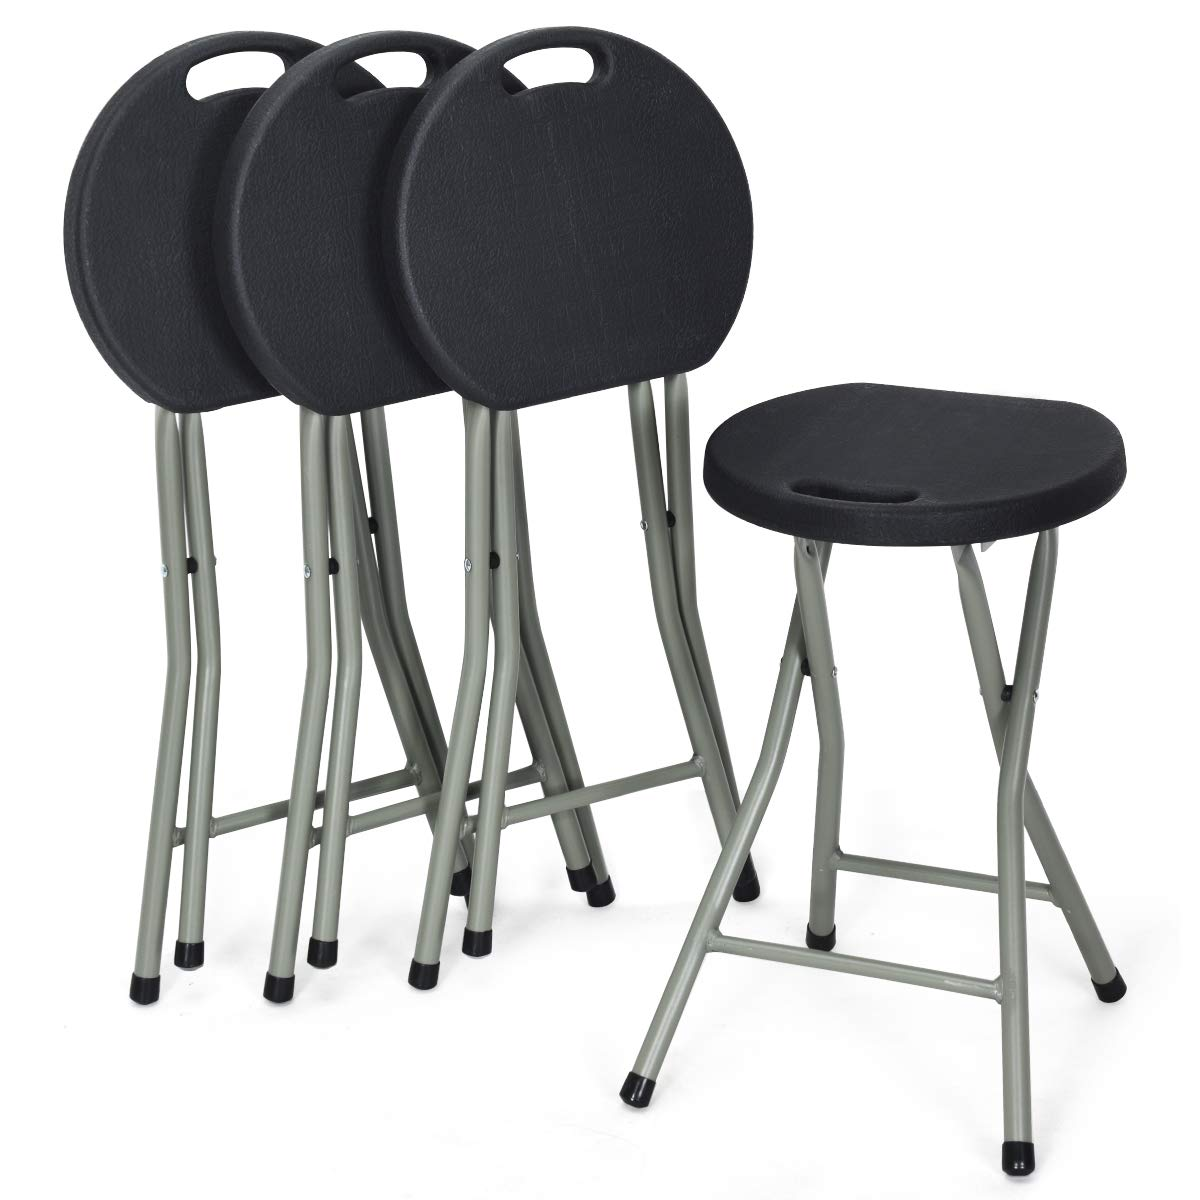 COSTWAY Set of 4 Folding Stool, Heavy Duty 18 inch Foldable Round Chair, Portable Collapsible Padded Seats with Durable Iron Legs, 300lbs Capacity for Adults, Suitable for Indoor and Outdoor (Black) by COSTWAY